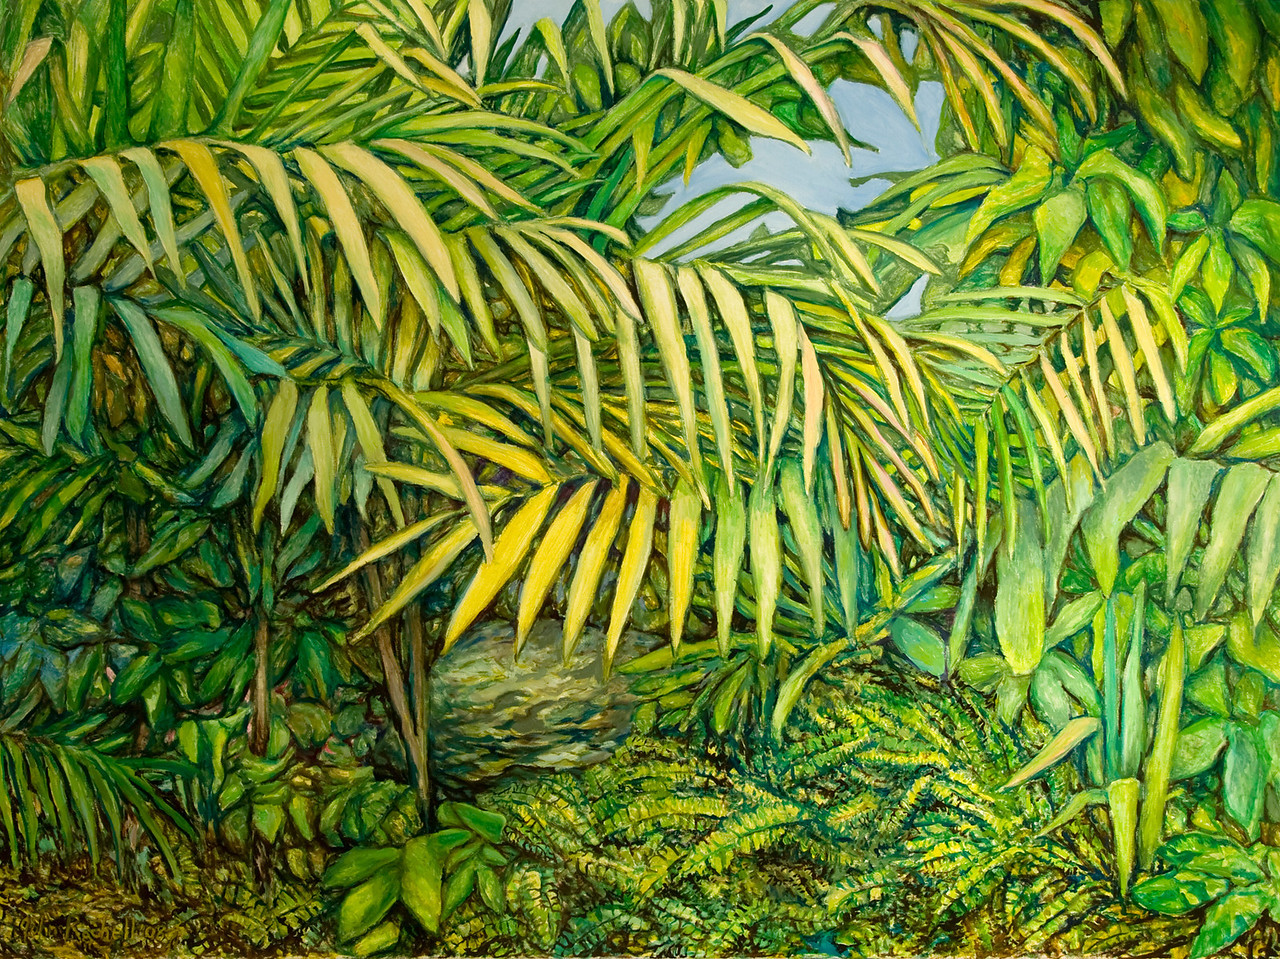 """© 2008 John Rachell Title: Garden, July 14, 2008 Image Size: 48"""" w by 36"""" d Dated: 2008 Medium and Support: Oils on Linen Signed: LL Signature"""